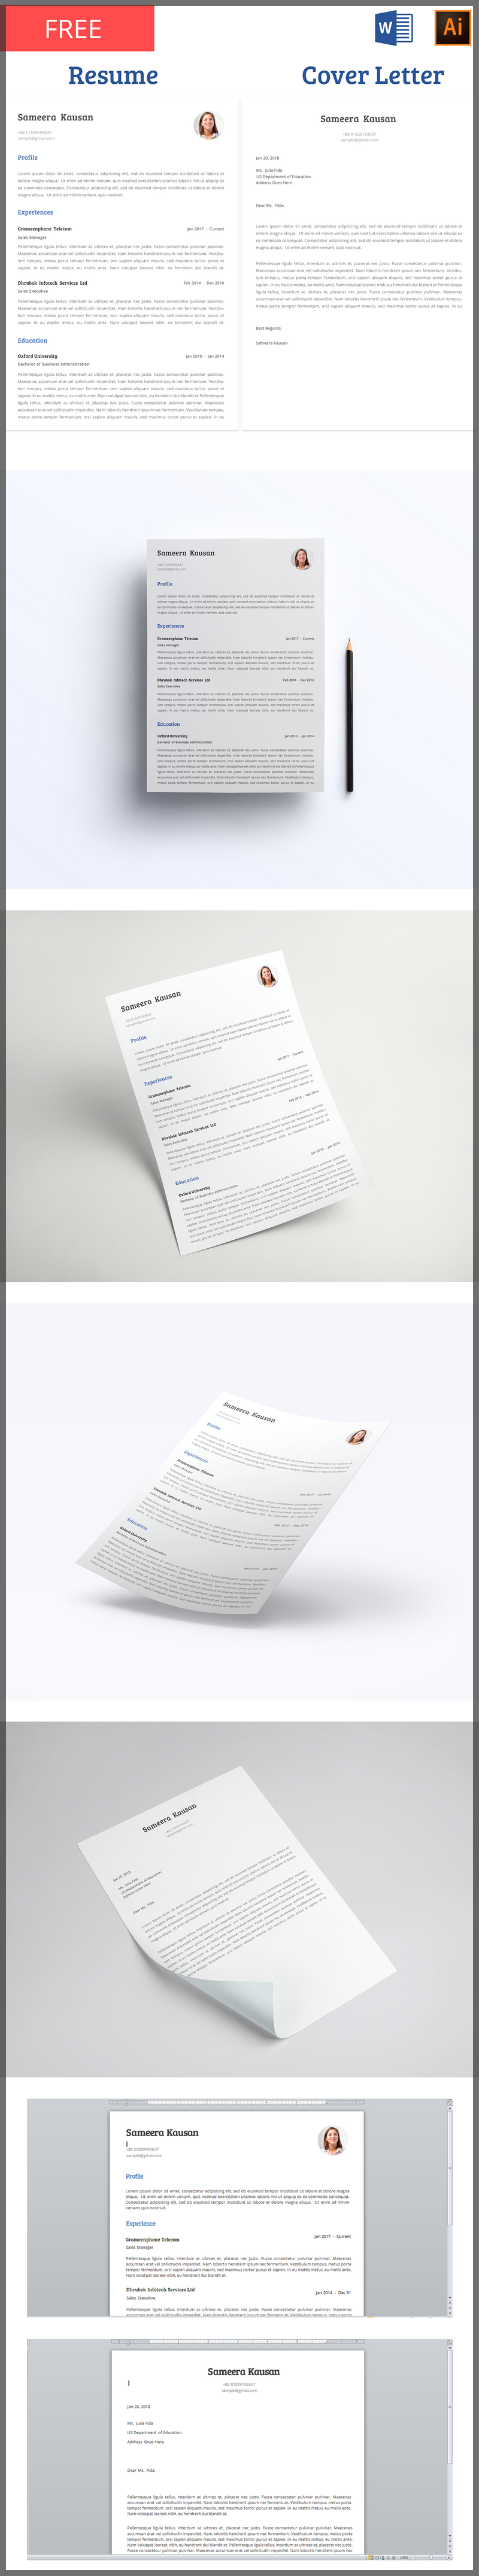 Free Resume Template With Cover Letter By Behance User Shoaib Mahmud. It  Includes Templates Editable In Both MS Word Or Adobe Illustrator, With A  Clean, ...